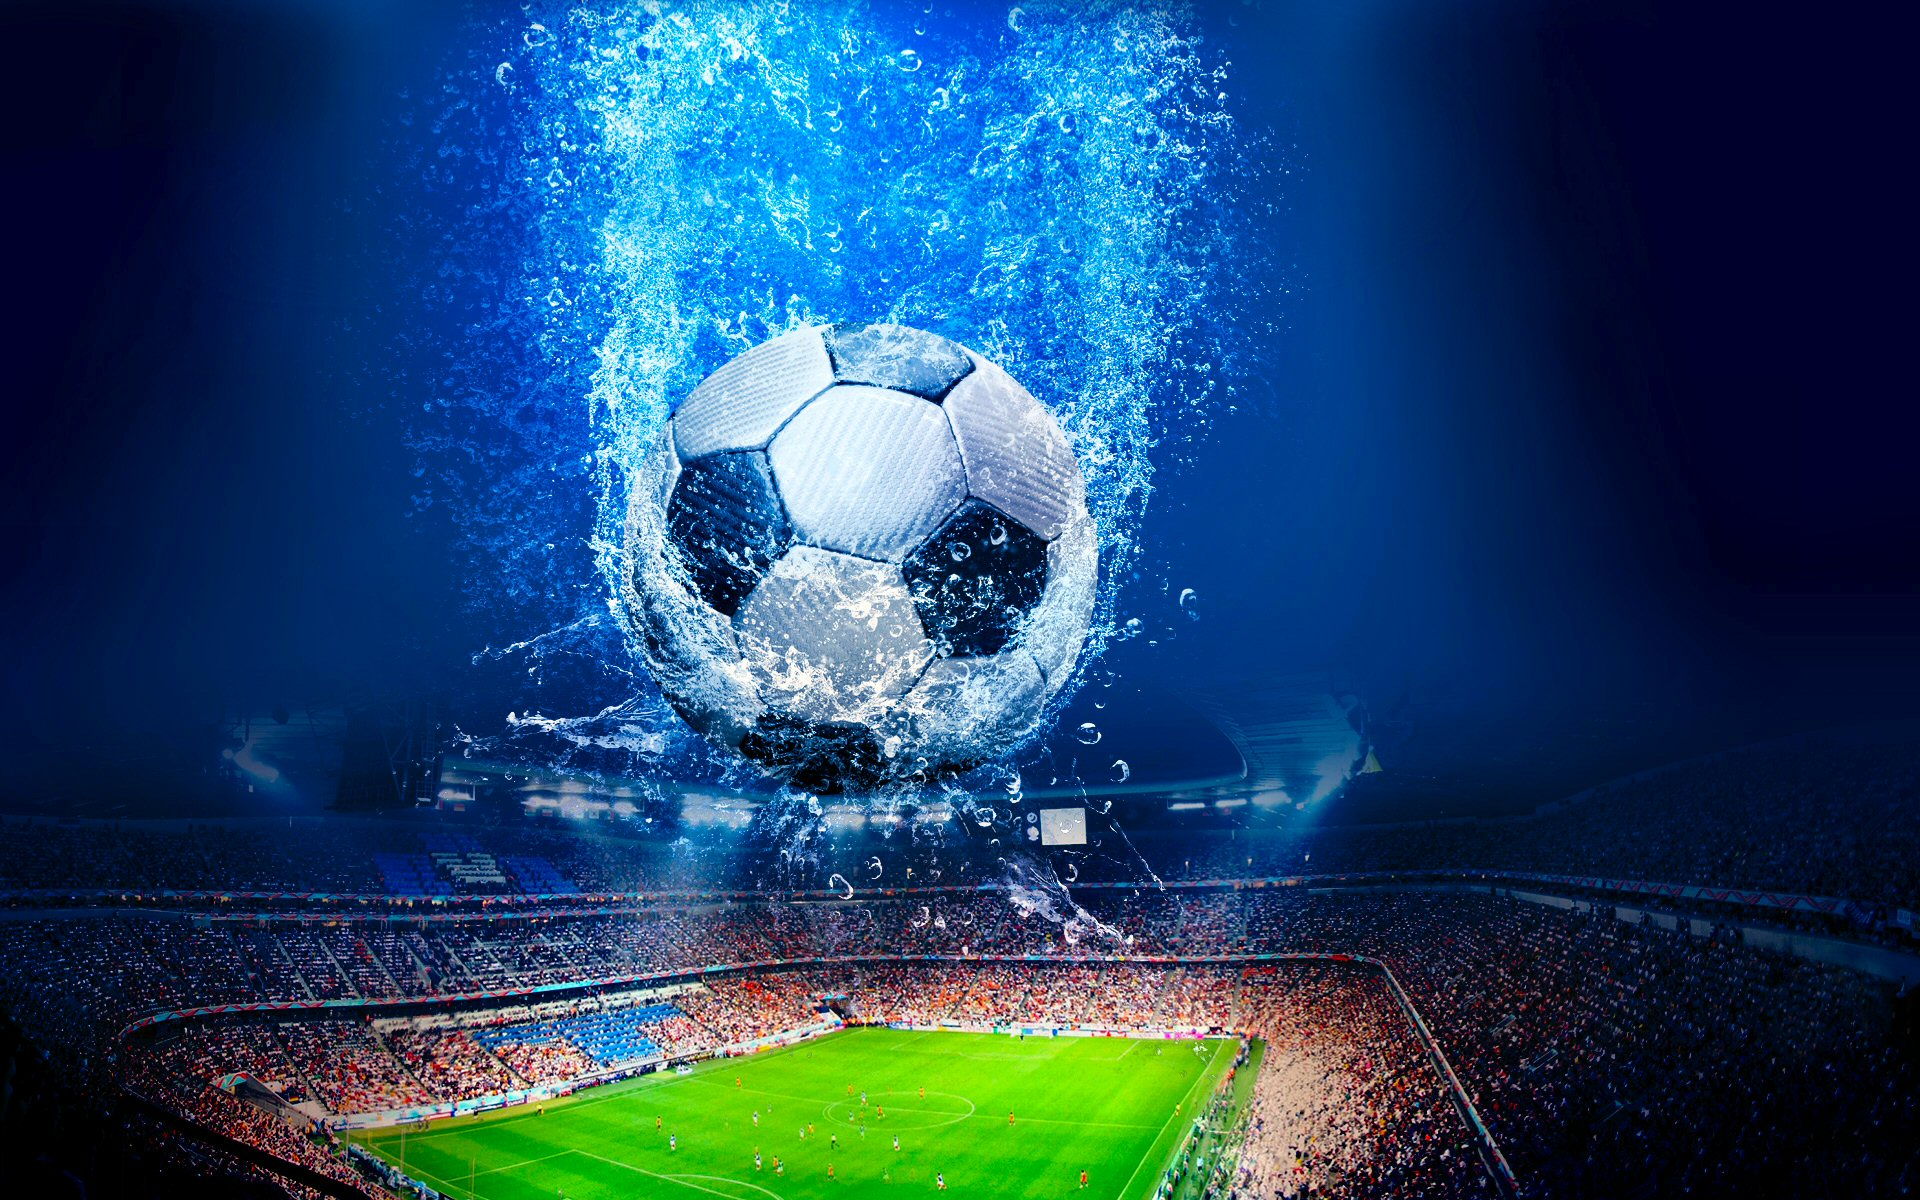 17 Fifa World Cup Brazil 2014 HD Wallpapers | Backgrounds - Wallpaper Abyss